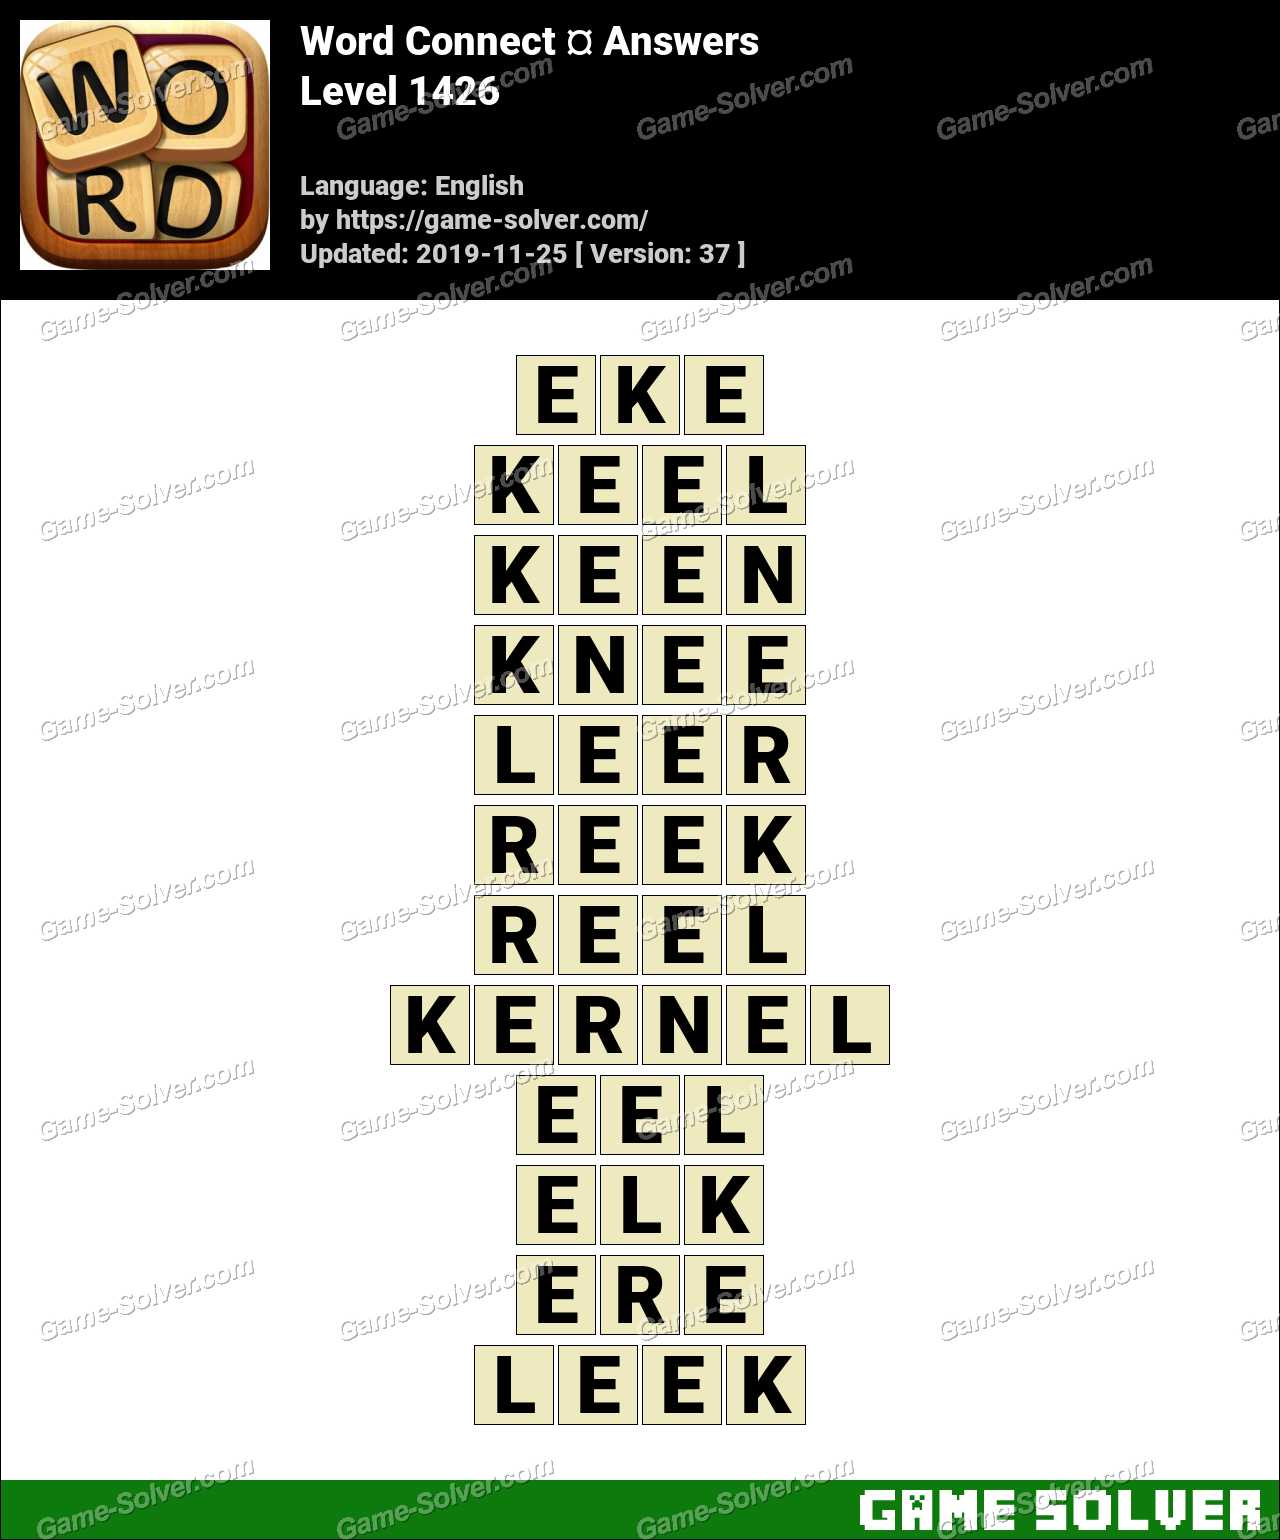 Word Connect Level 1426 Answers